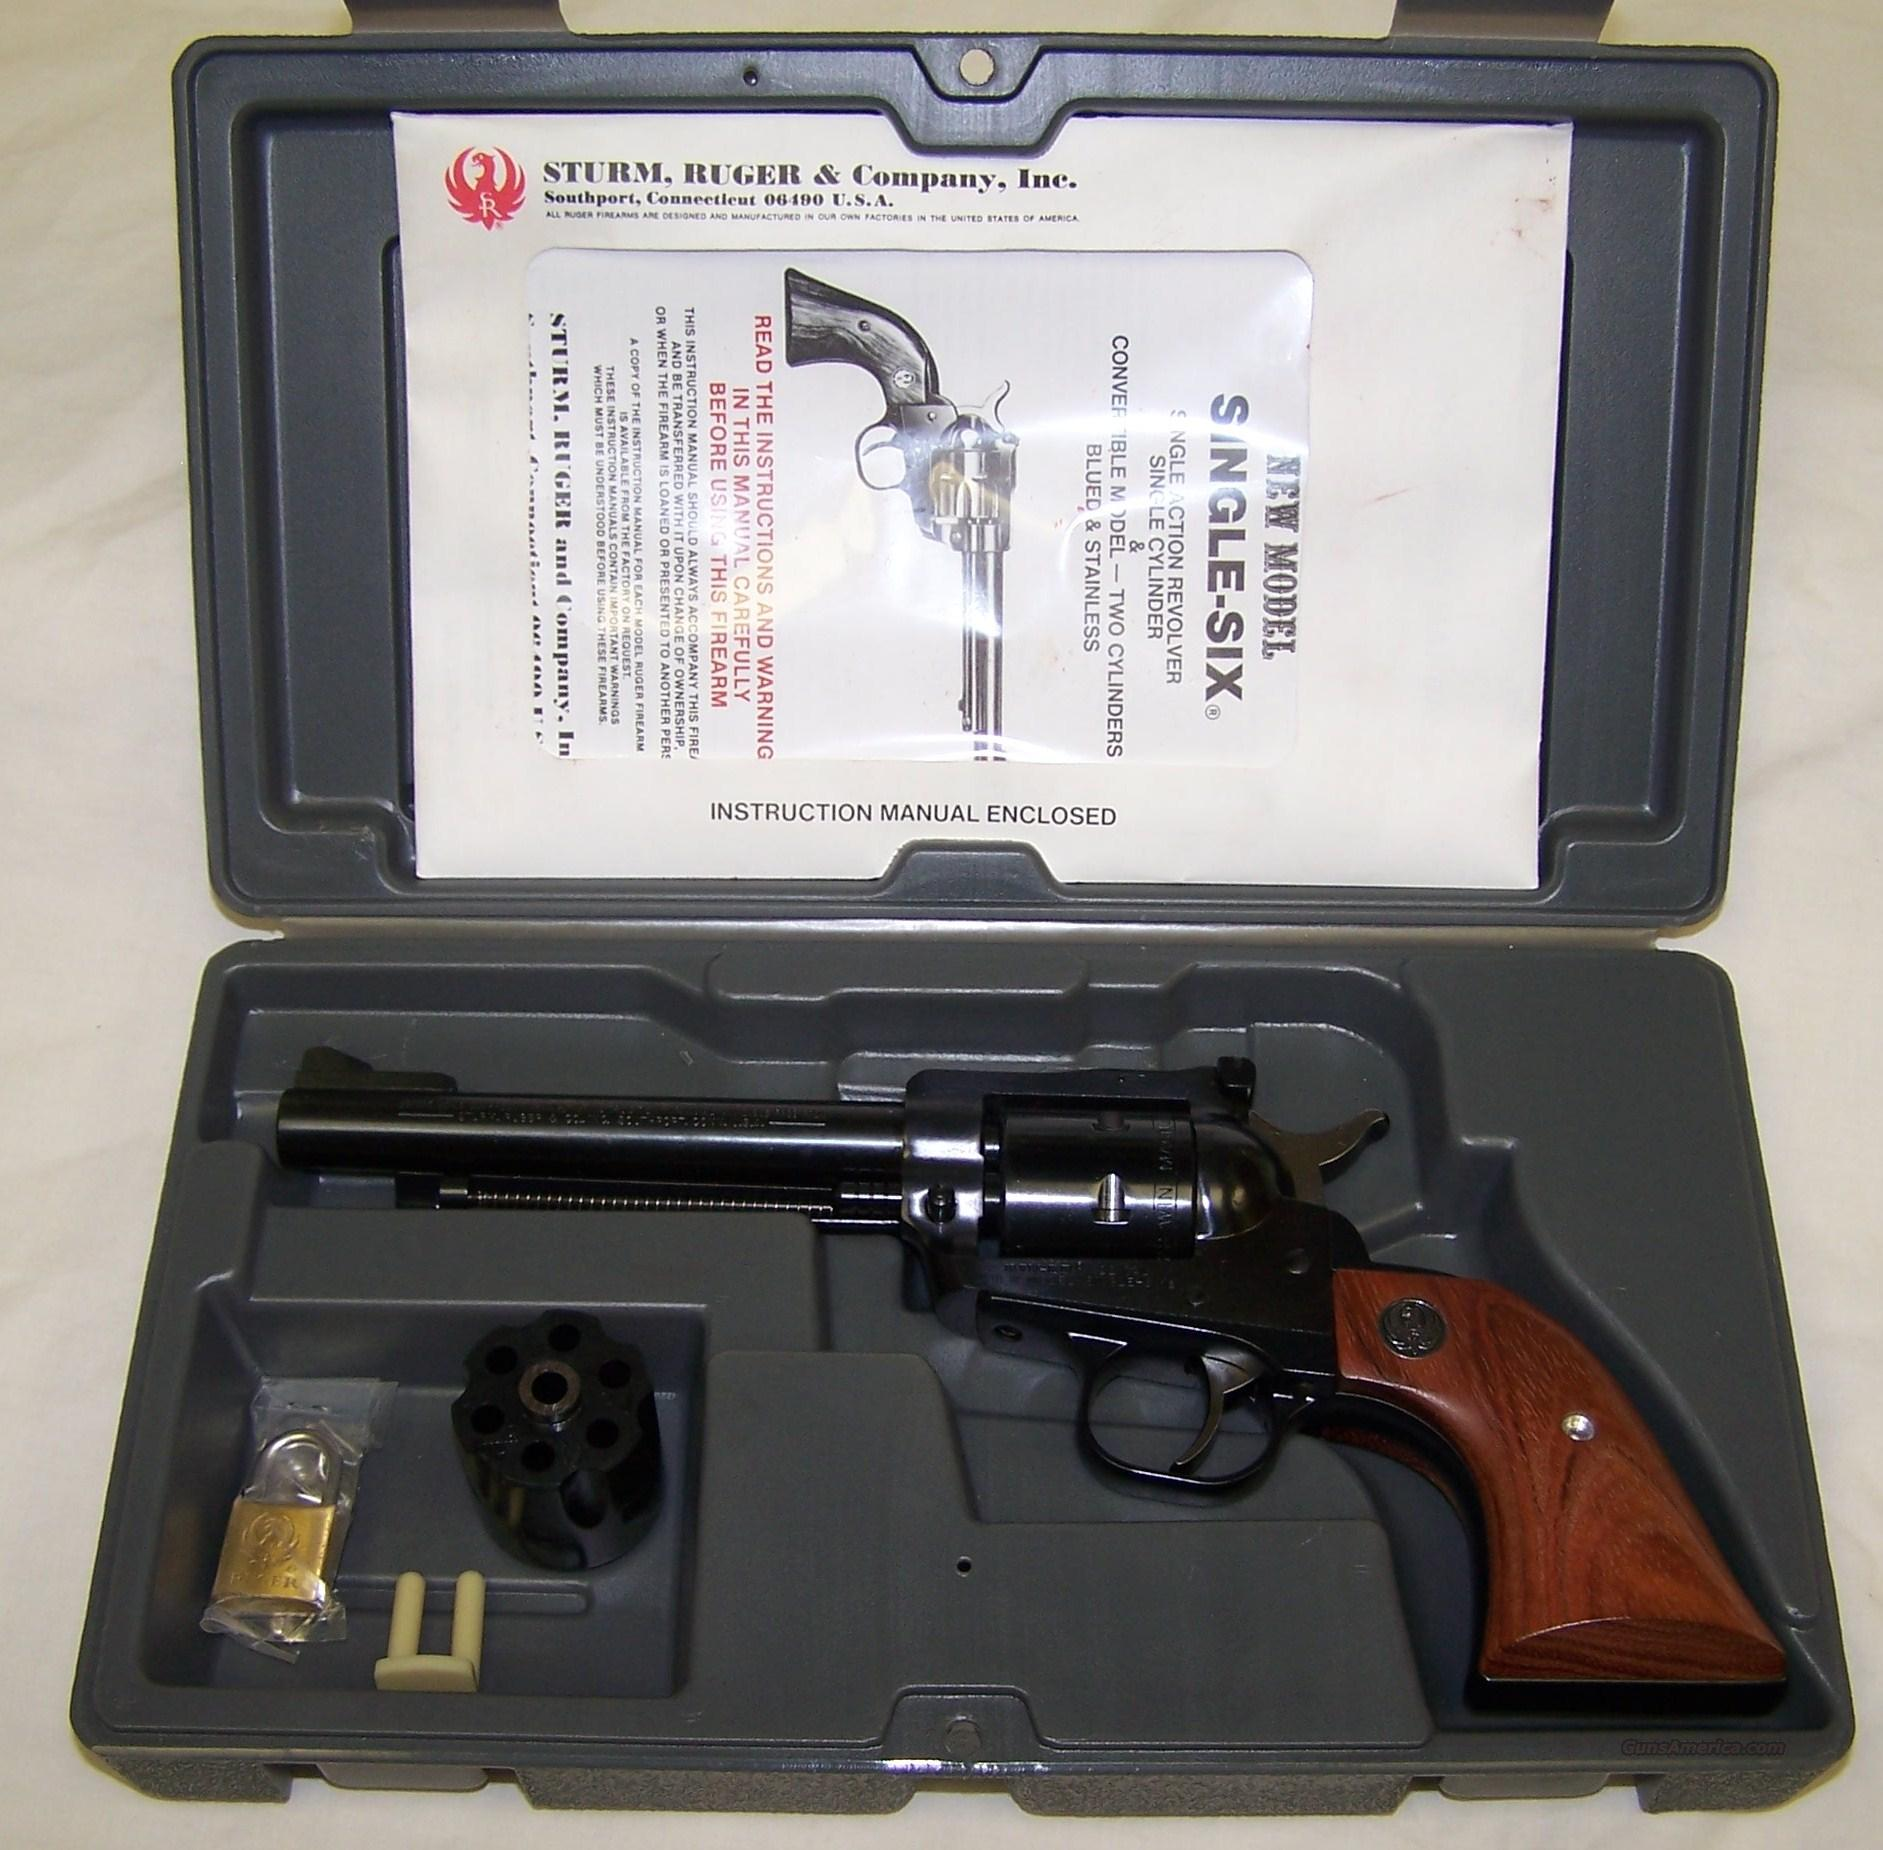 NEW MODEL SINGLE SIX CONVERTIBBLE  Guns > Pistols > Ruger Single Action Revolvers > Single Six Type